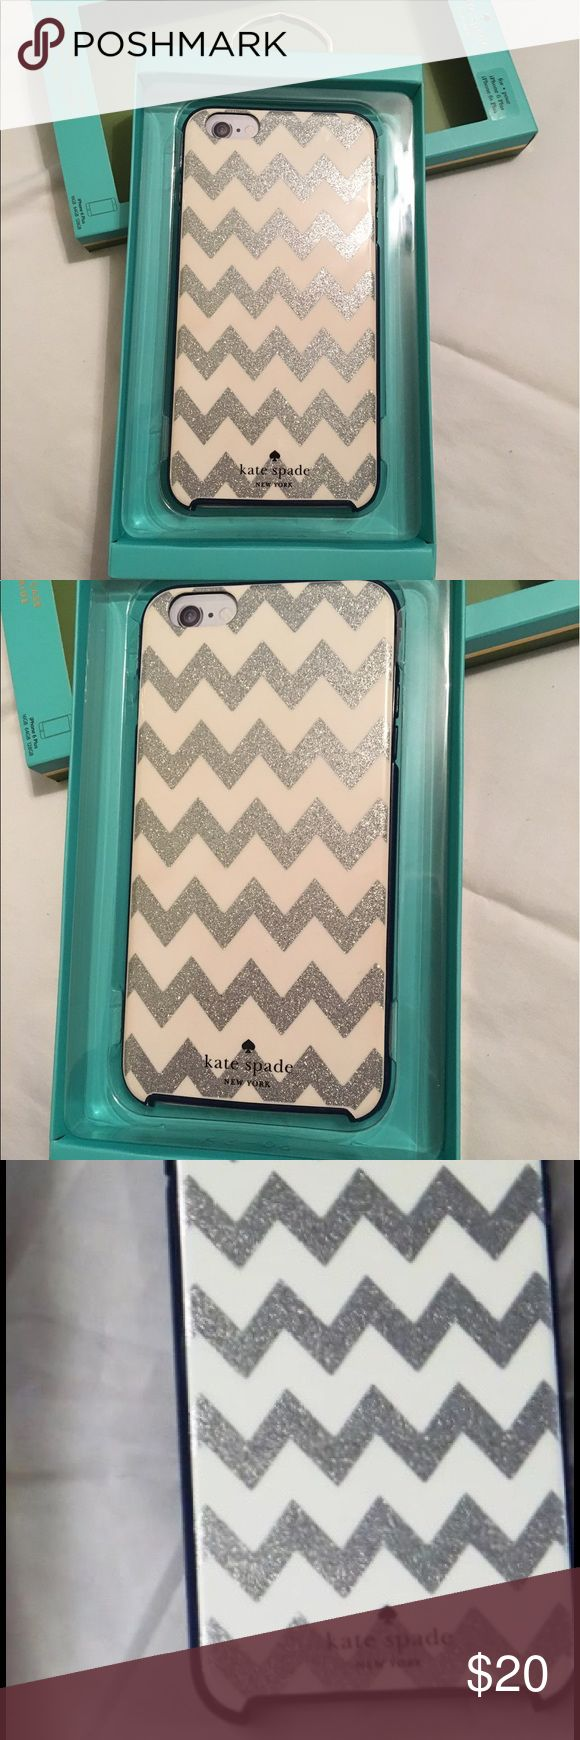 Kate Spade NY iPhone 6/6s Plus Hardshell Case Brand new, never used. Retail cost $45, only asking $20 OBO.  Safeguard your Apple iPhone 6 Plus or 6s Plus with this kate spade new york KSIPH-012-CGSN case, which offers durable polycarbonate material with removable rubberized bumpers to absorb shock & keep your device looking like new. -Compatible with Apple iPhone 6/6s Plus -Hard shell polycarbonate case safeguards your device against everyday wear & tear -Rubberized bumper offers additional…